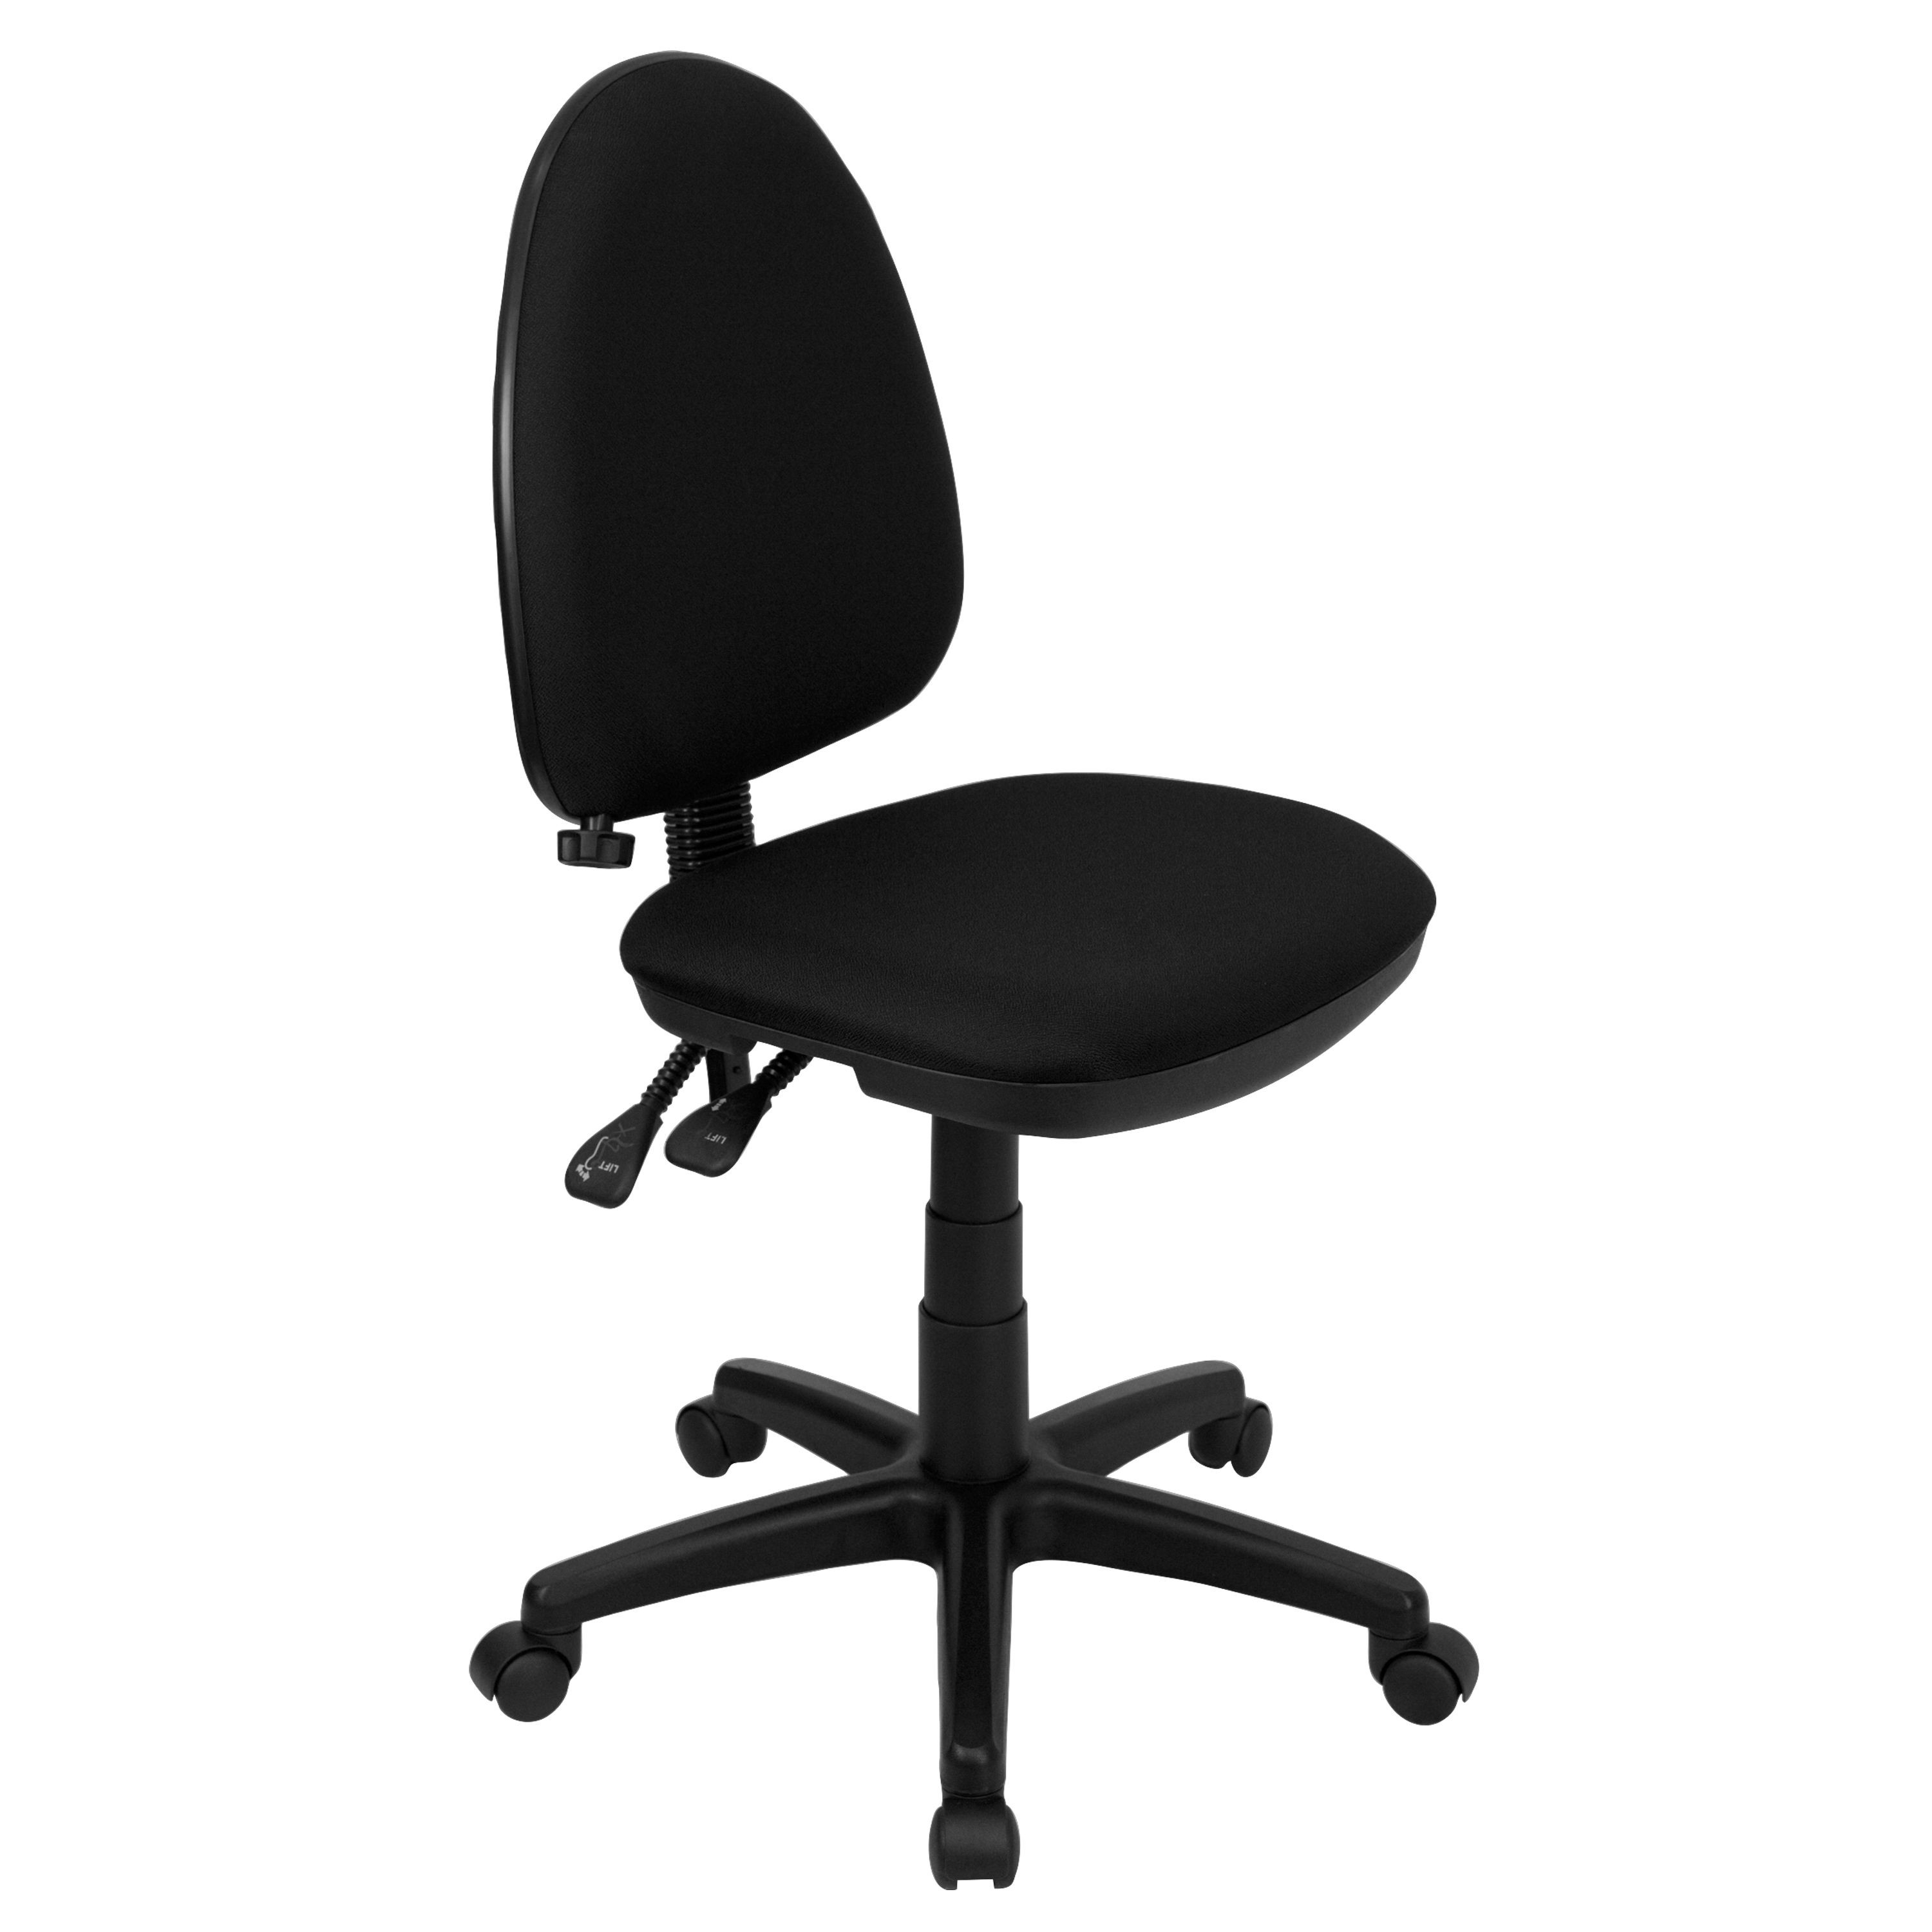 Flash Furniture WL-A654MG-BK-GG Black Fabric Multi-Function Task Chair with Adjustable Lumbar Support